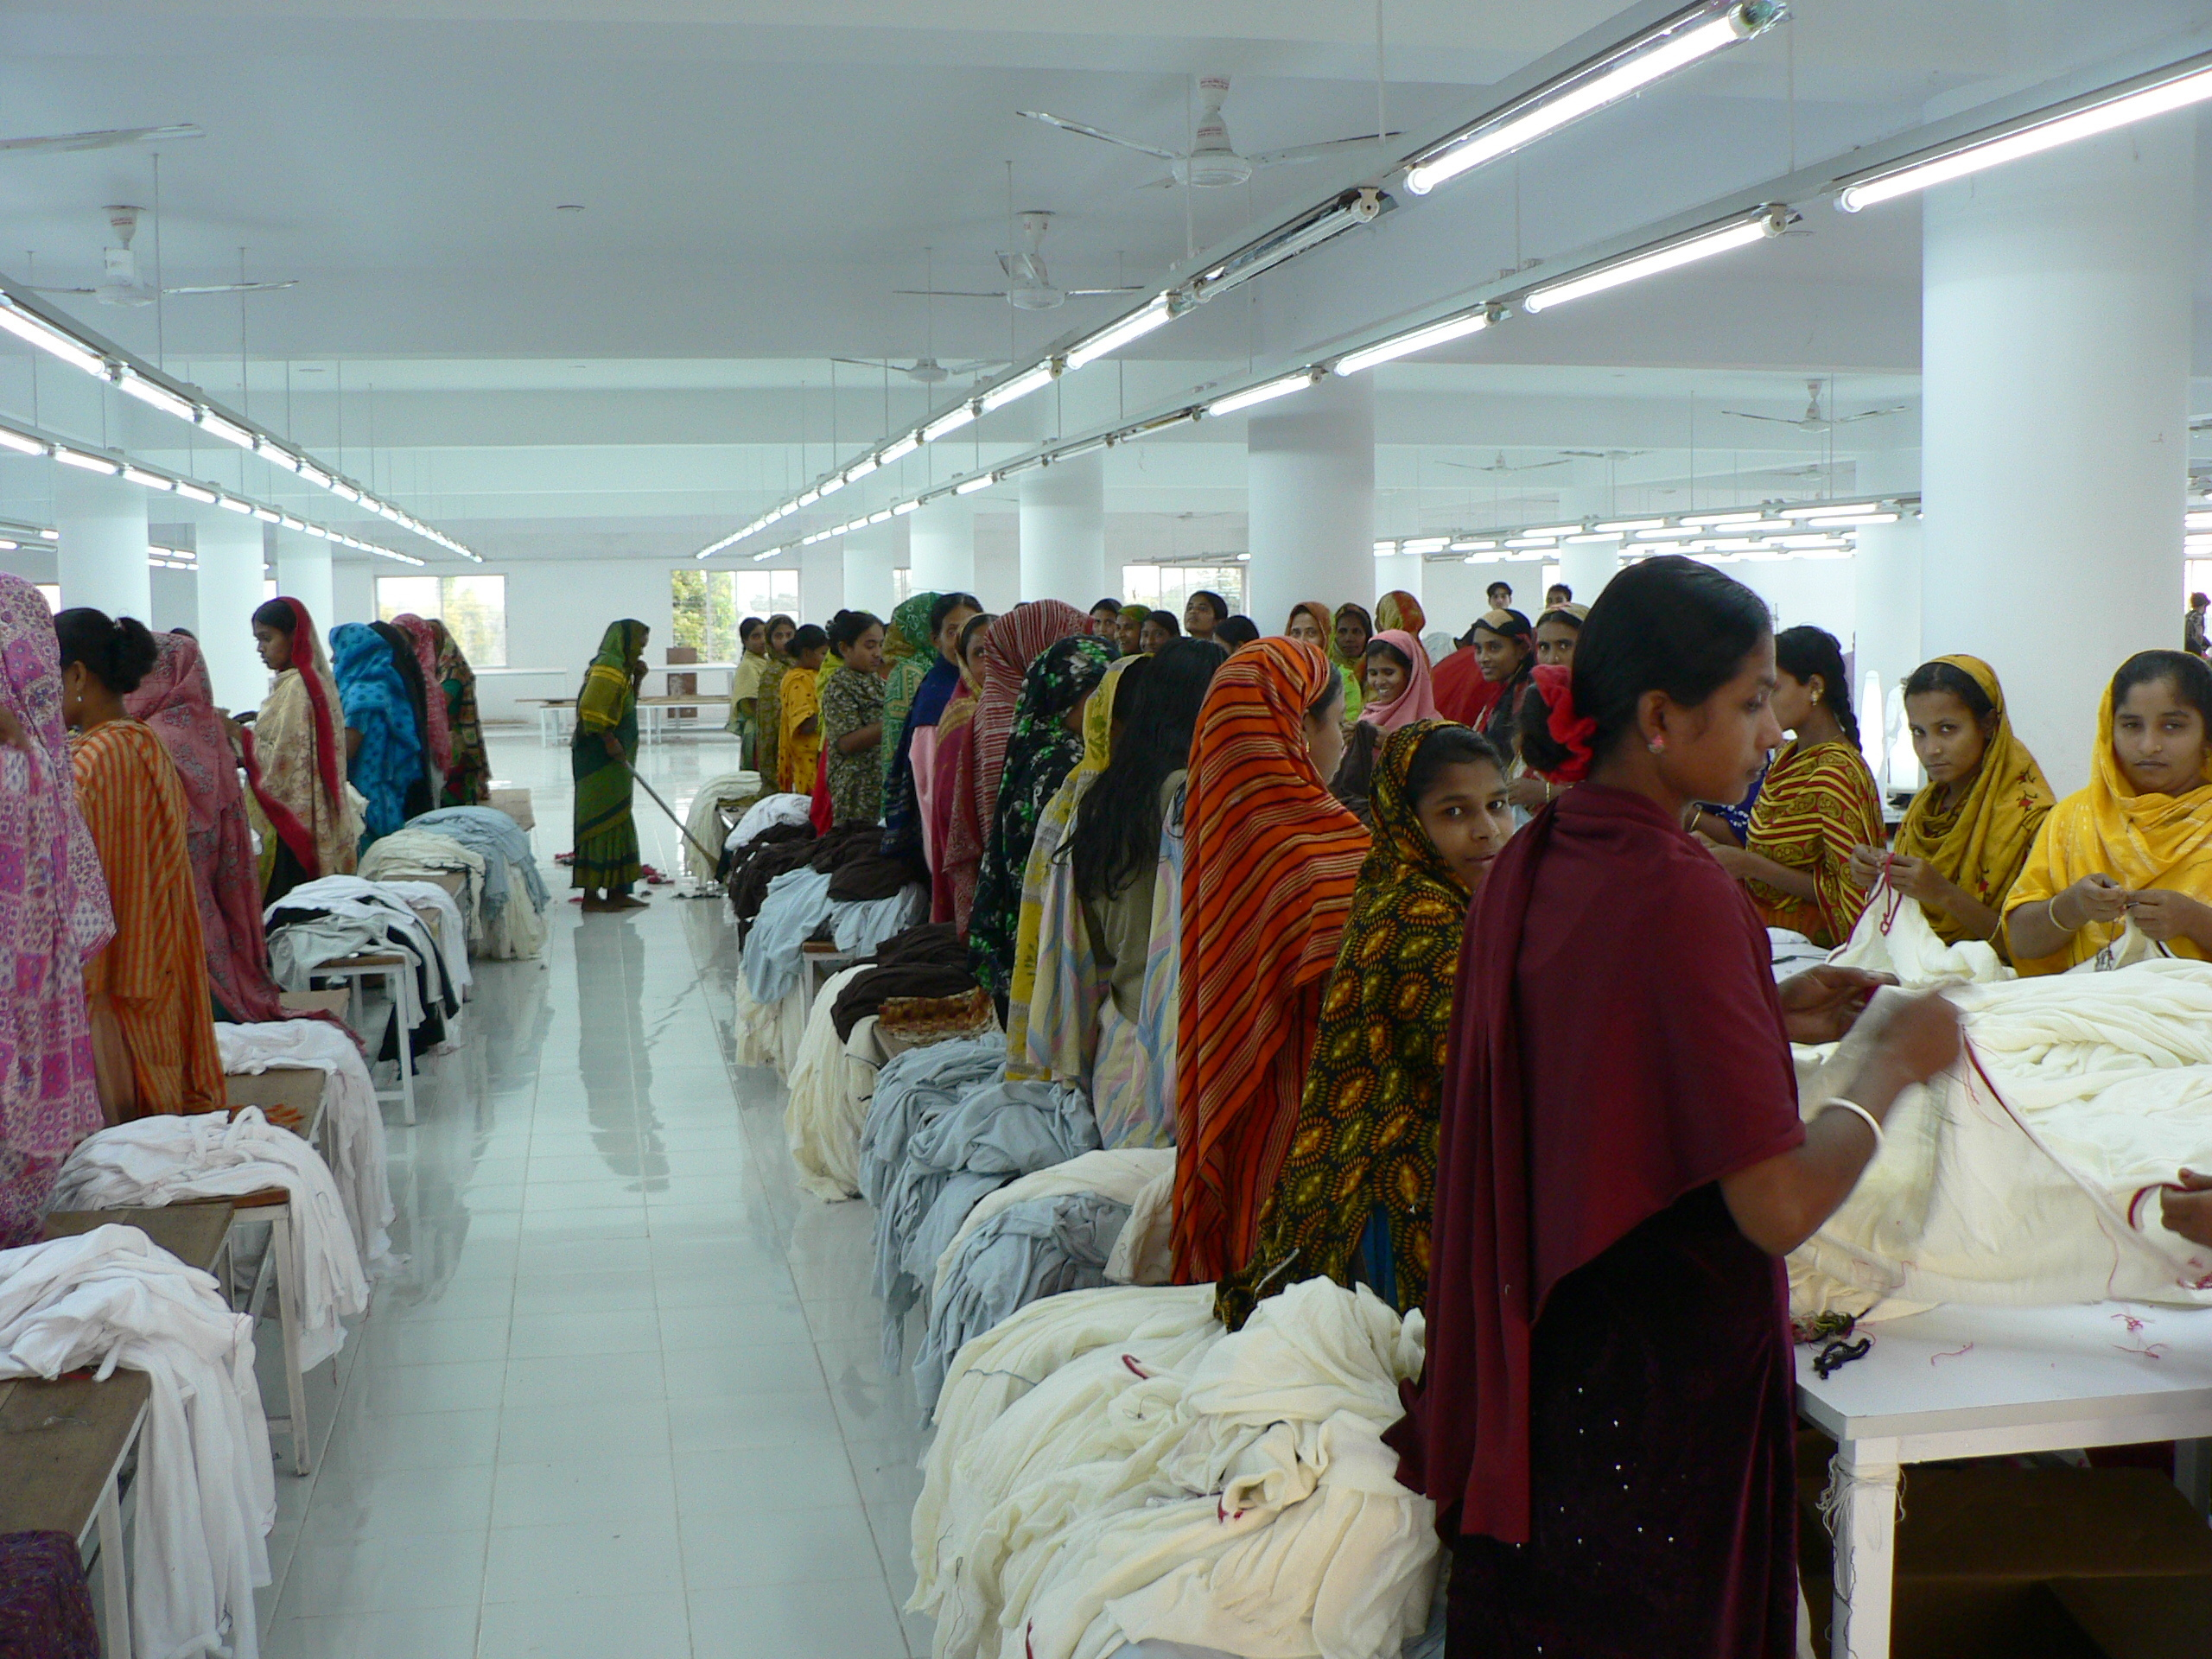 U.S. apparel brands and retailers look to Bangladesh for garment sourcing and manufacturing, according to HSBC Bangladesh CEO, citing the U.S.-China trade war